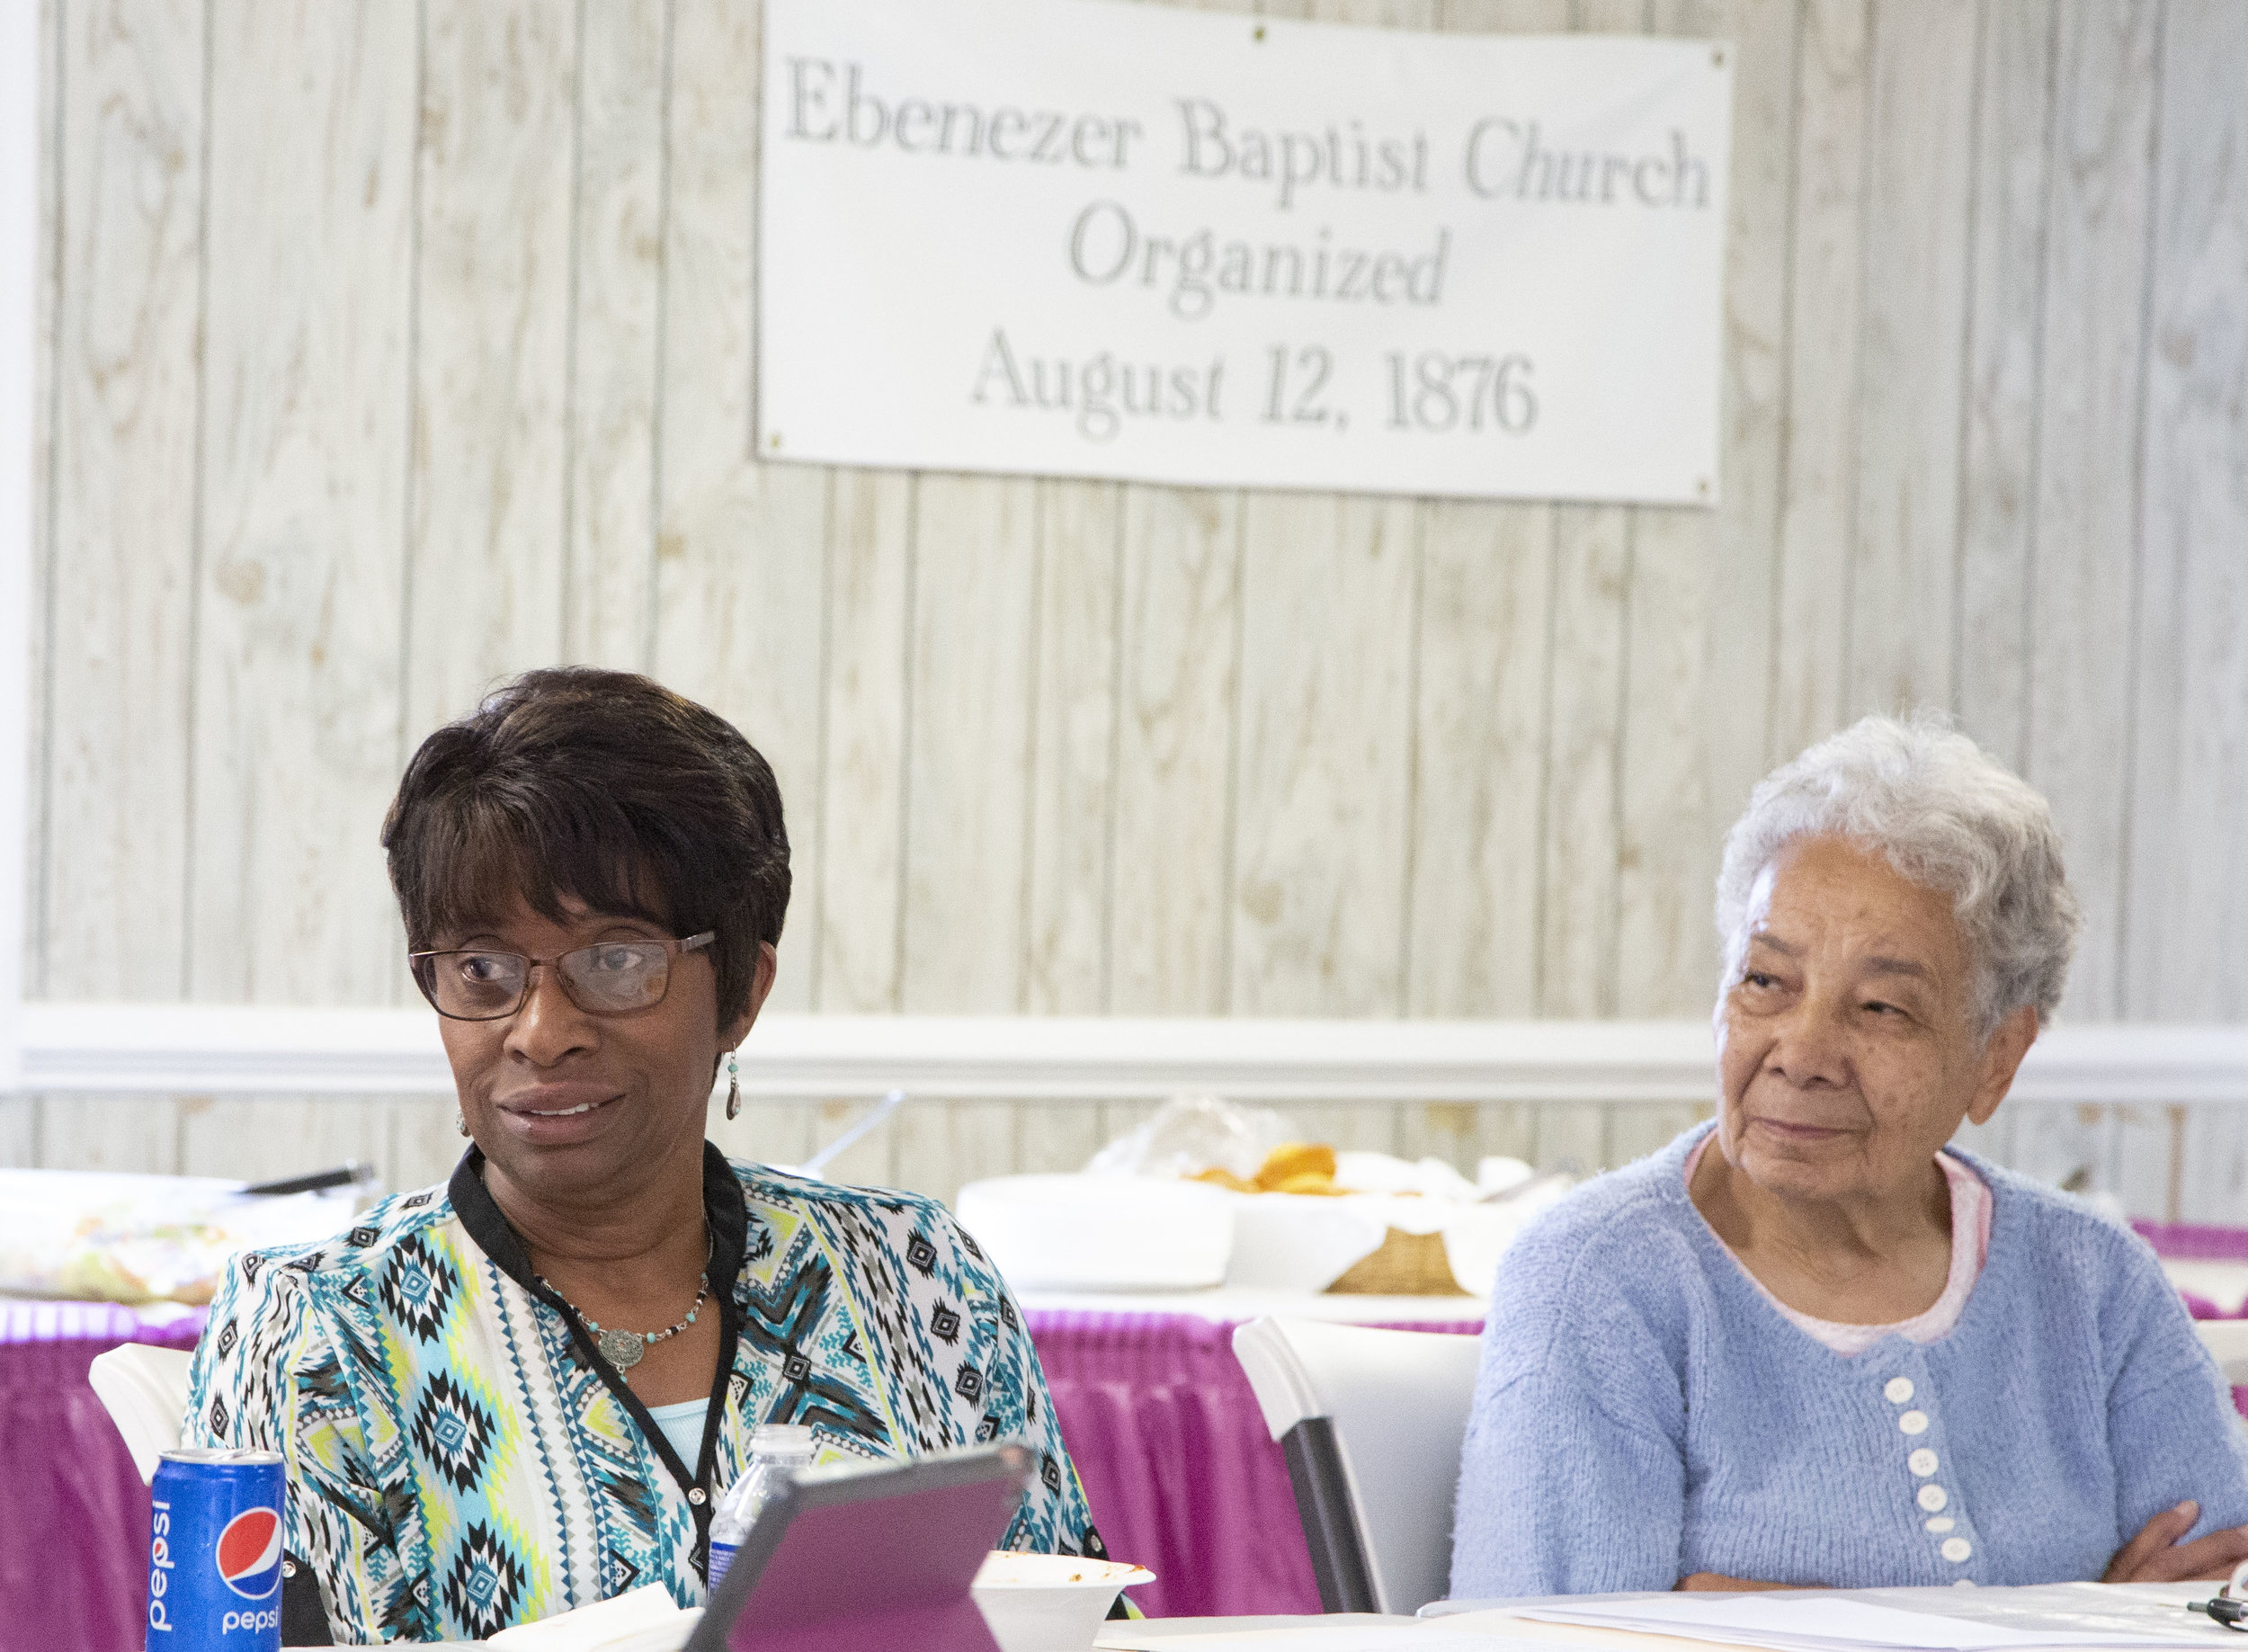 Listen: The Community Speaks participants at Mt. Ebenezer Baptist Church in Midland, Virginia, talk about growing up in southern Fauquier County.